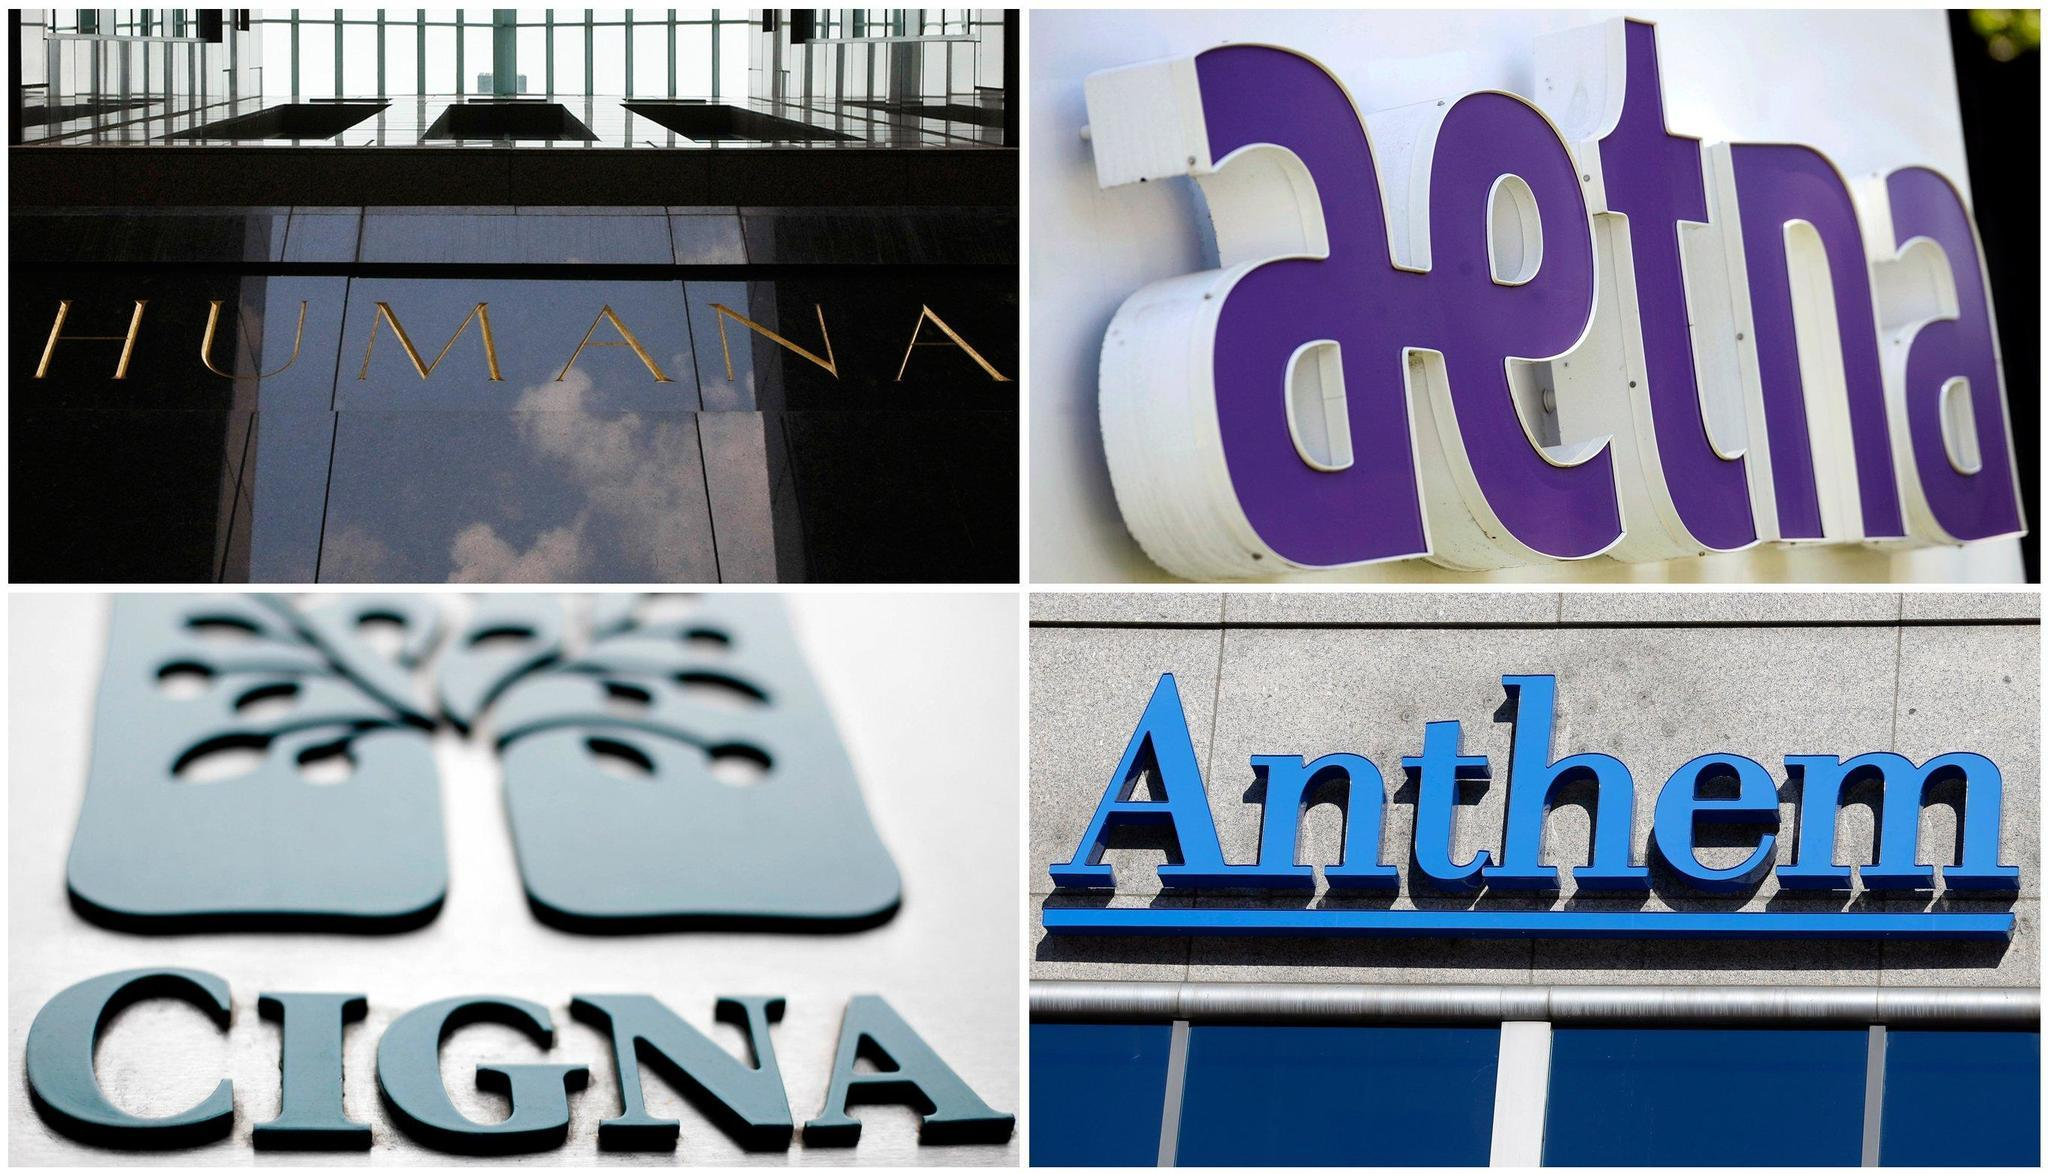 anthem cigna merger block A federal judge monday blocked the proposed $37 billion mega-merger between us health insurance industry giants aetna and humana, ruling that the transaction would reduce competition for consumers.